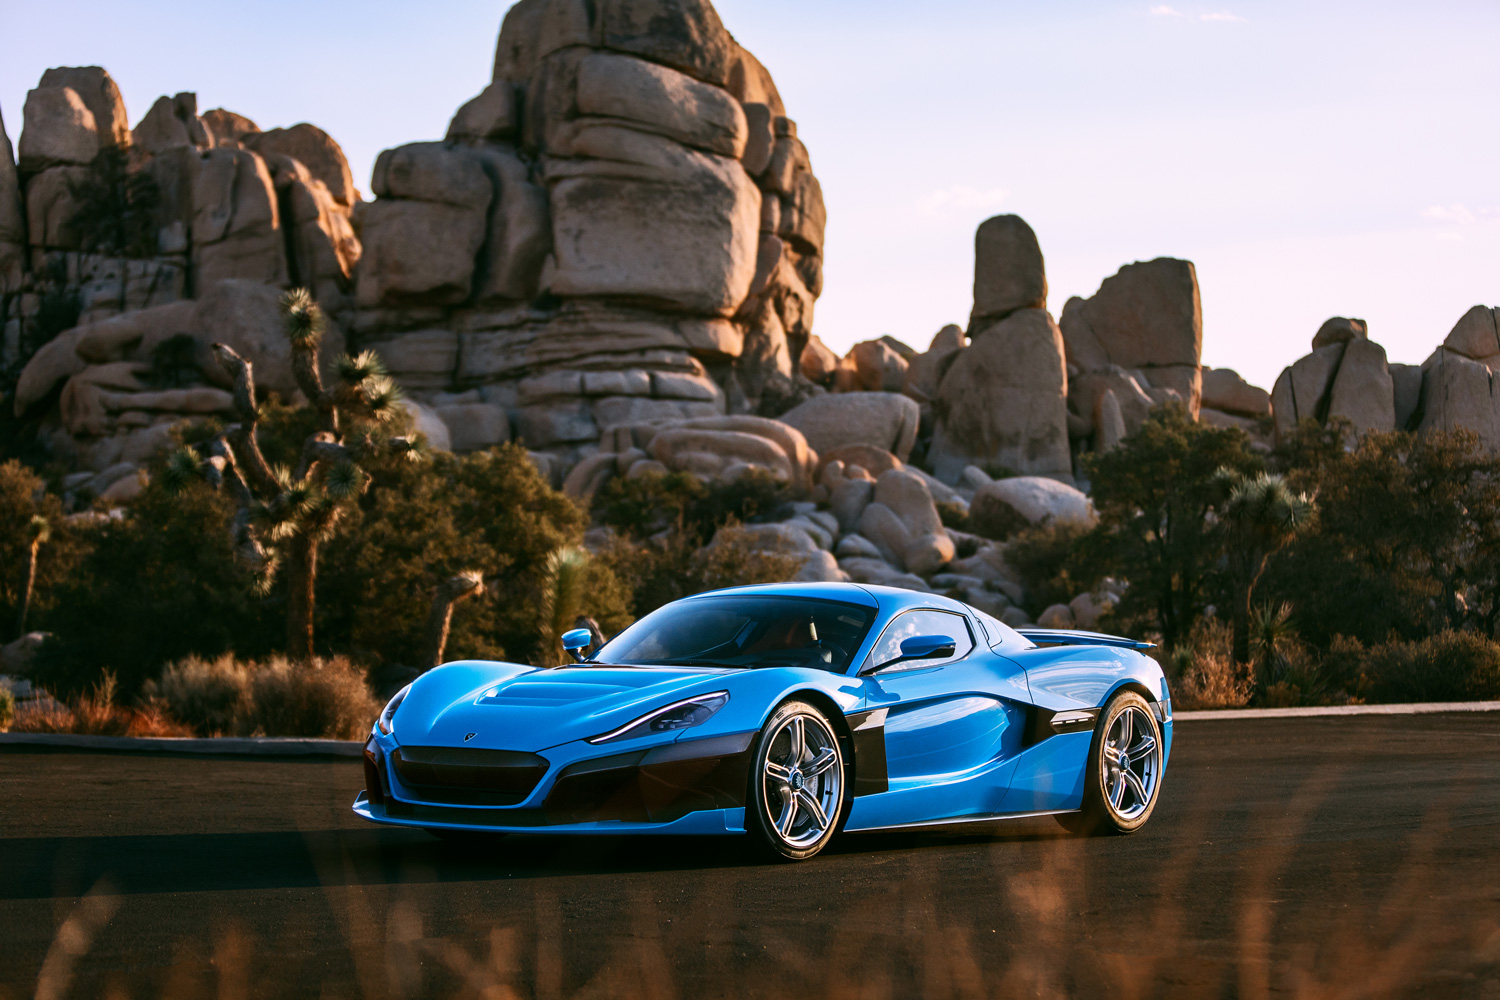 Hyundai invests in Rimac and will collaborate on an EV sports car